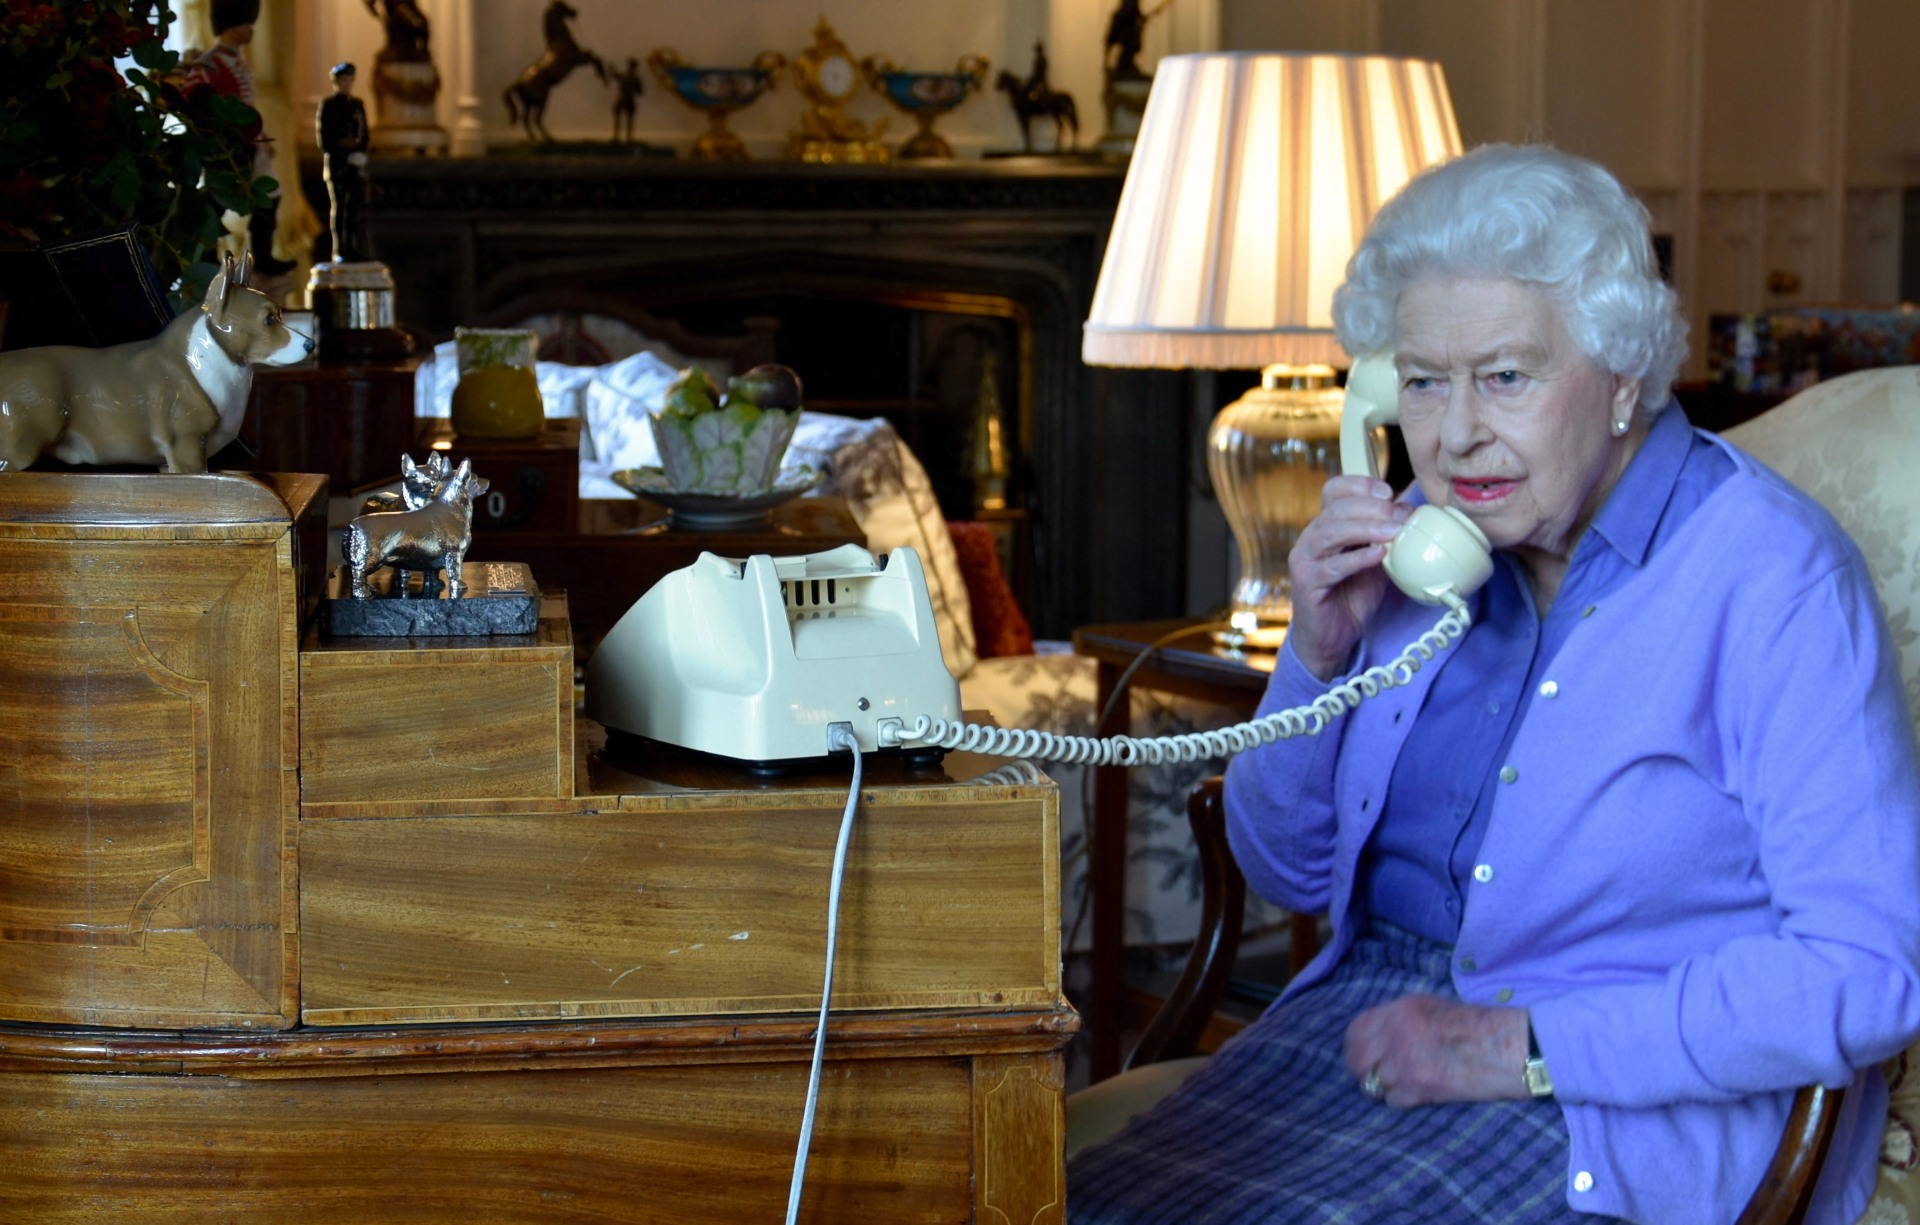 HM Queen Elizabeth homeworking